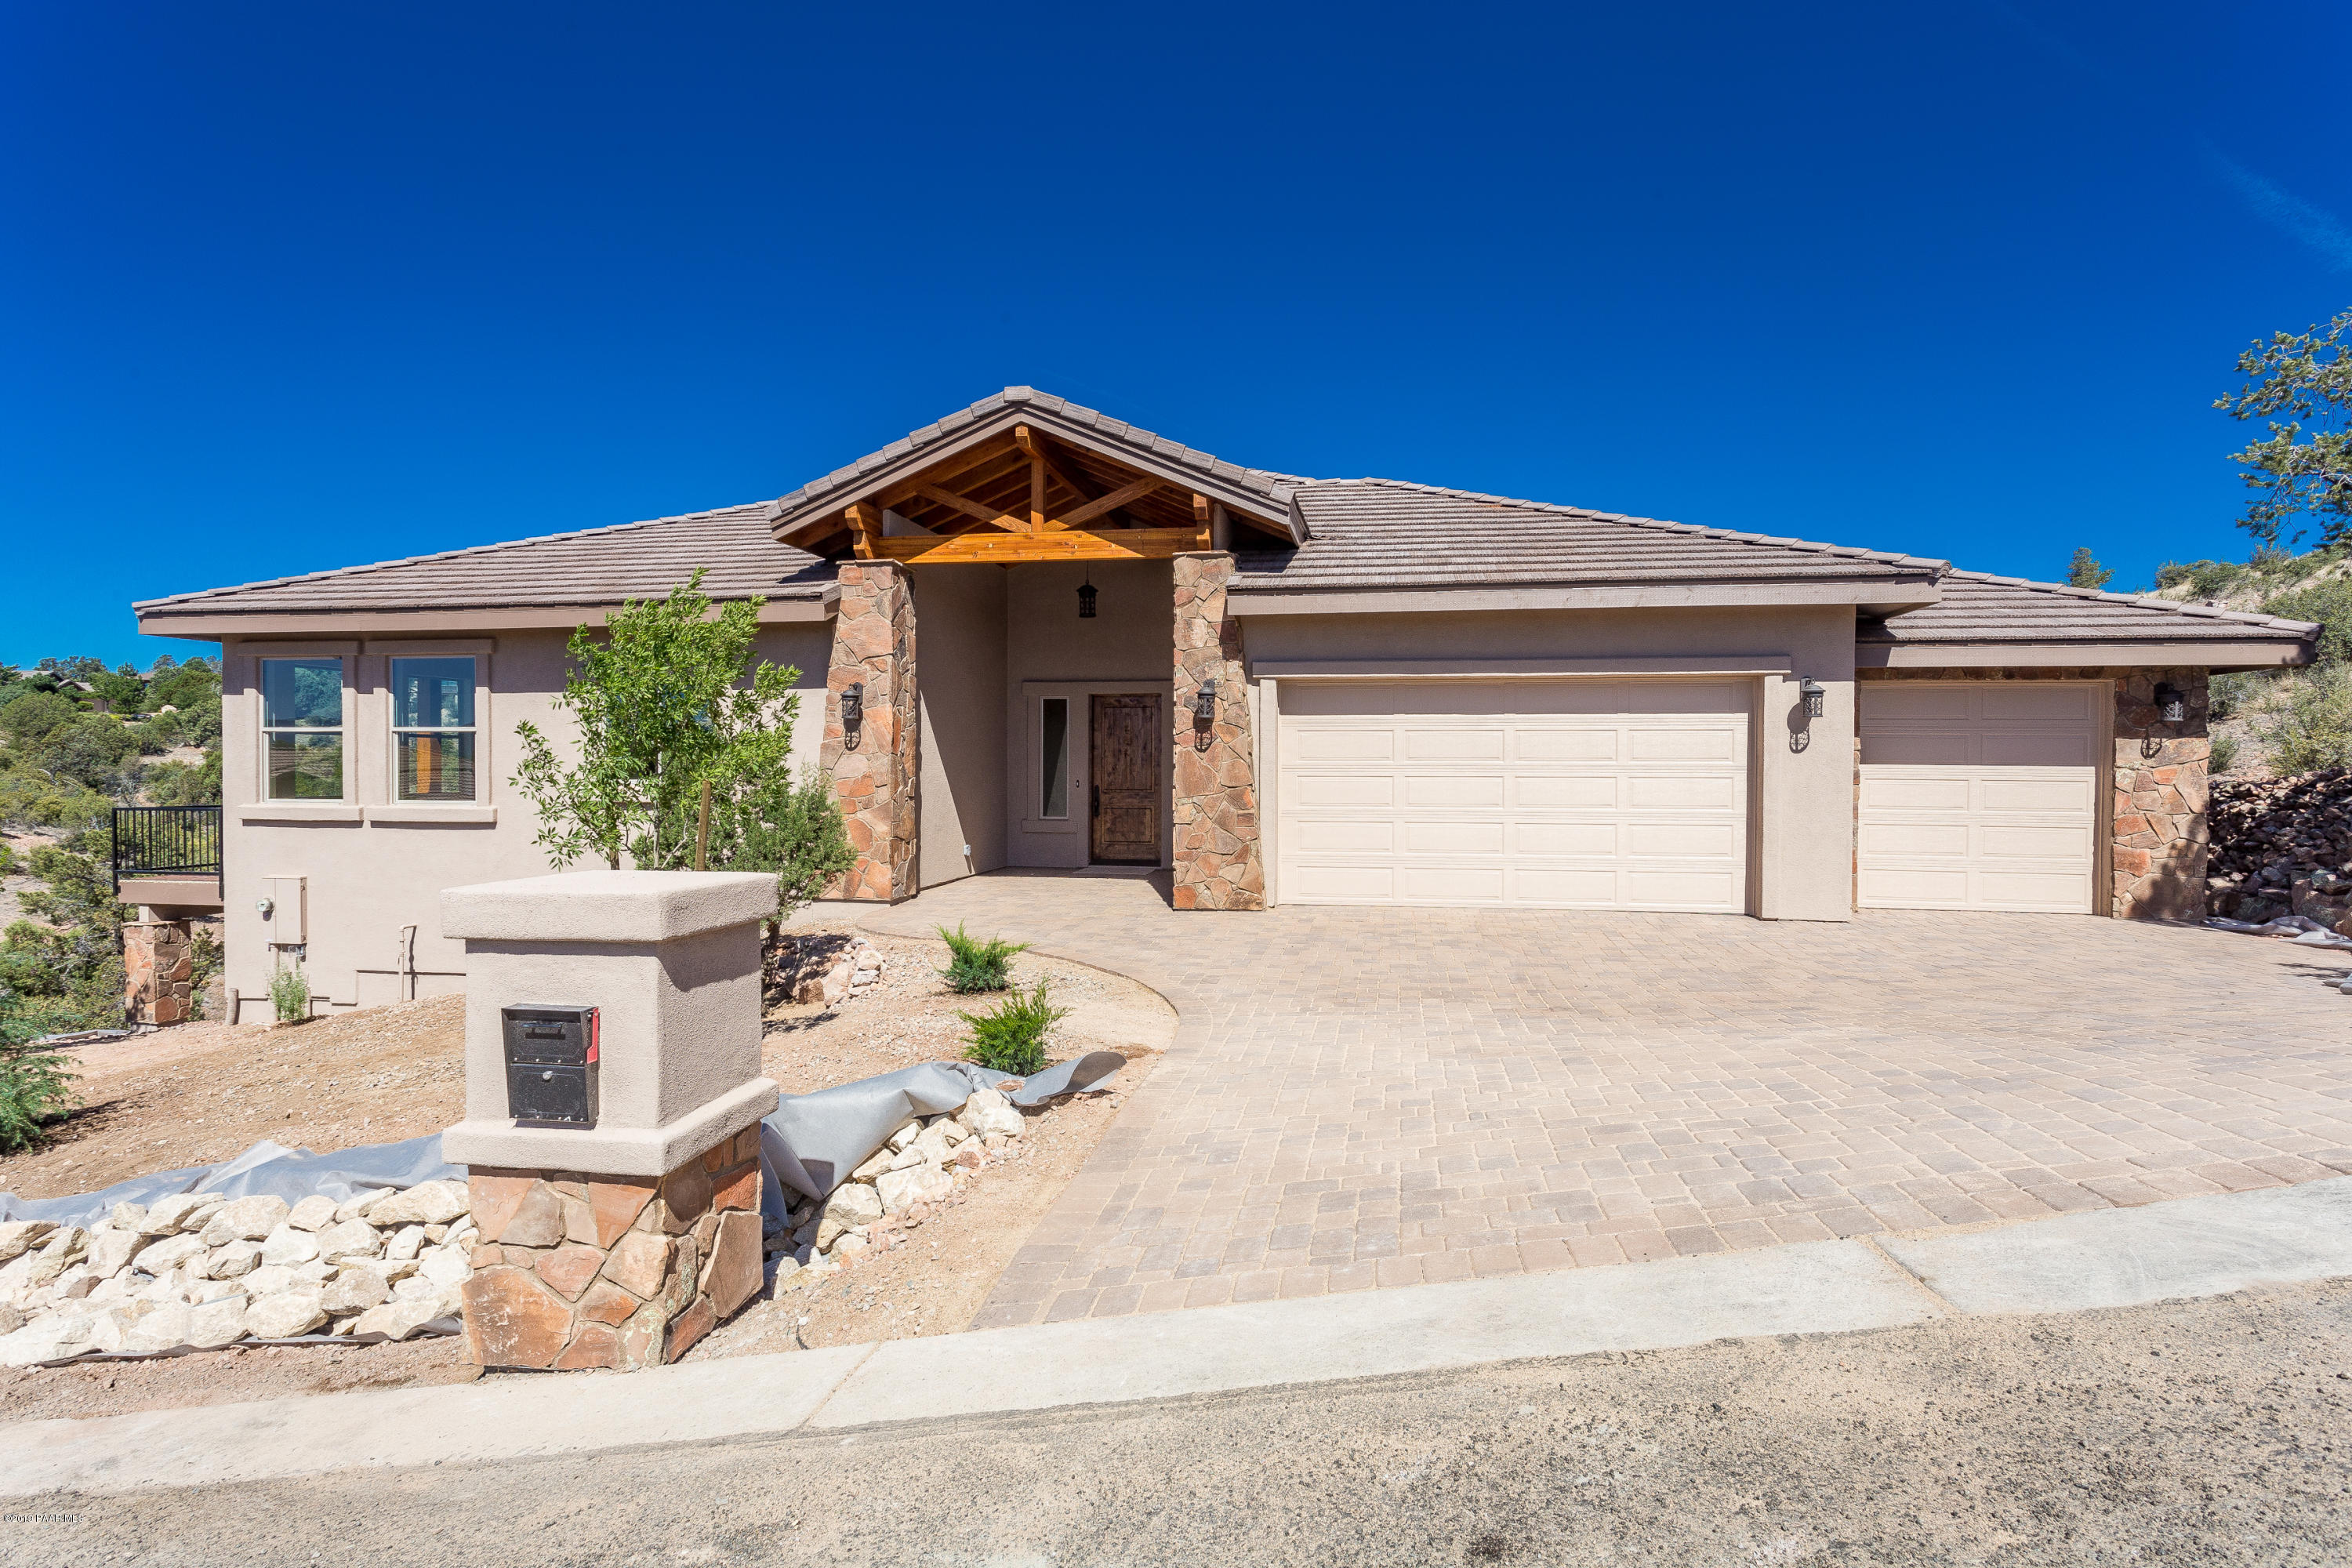 Photo of 2001 Promontory, Prescott, AZ 86305